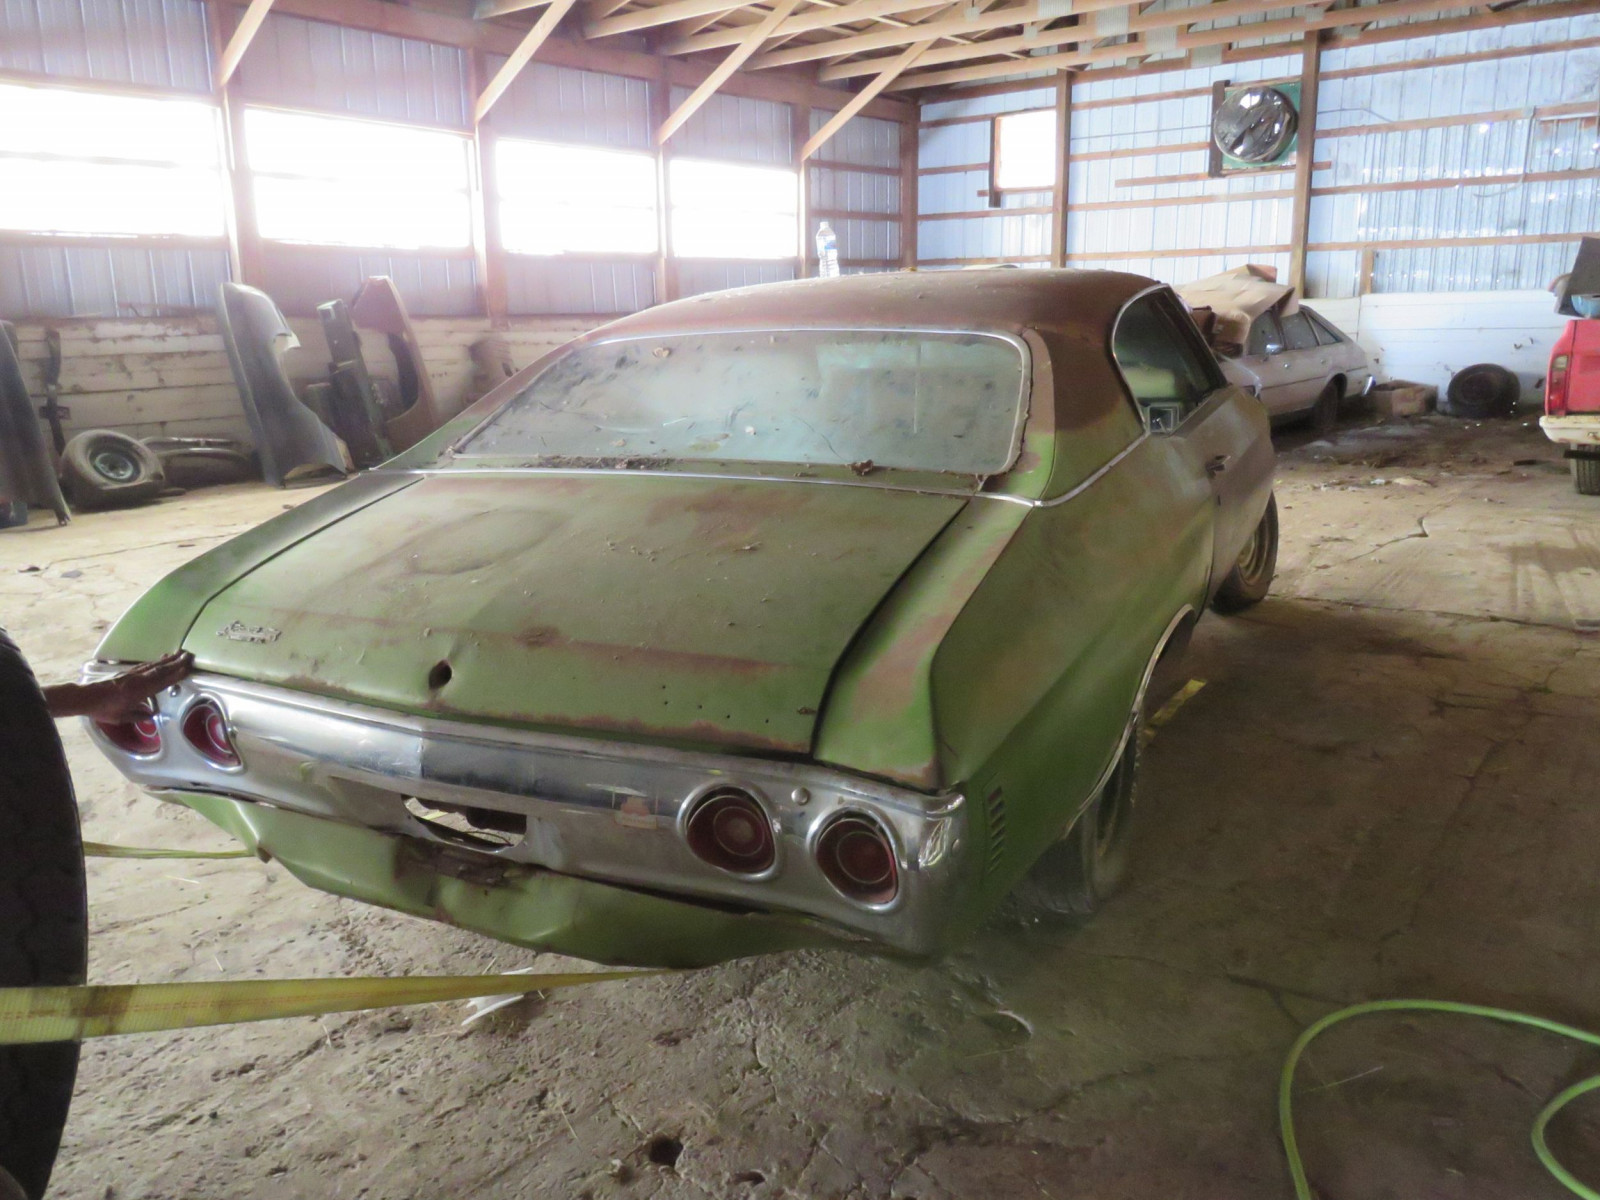 1971 Chevrolet Chevelle Rolling Body for Project - Image 4